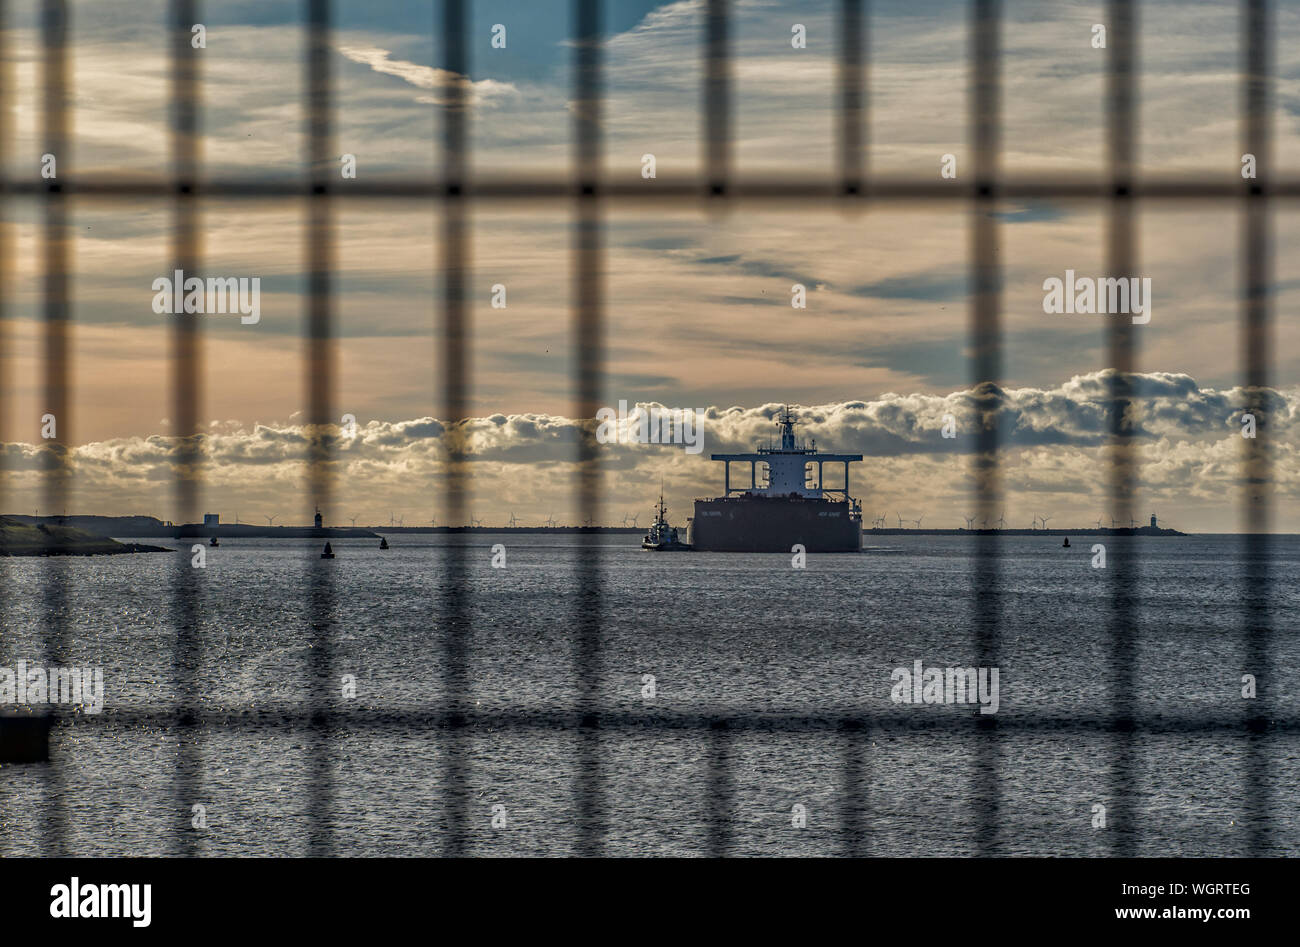 Boat Moving In Sea Seen Through Fence Against Cloudy Sky During Sunset Stock Photo